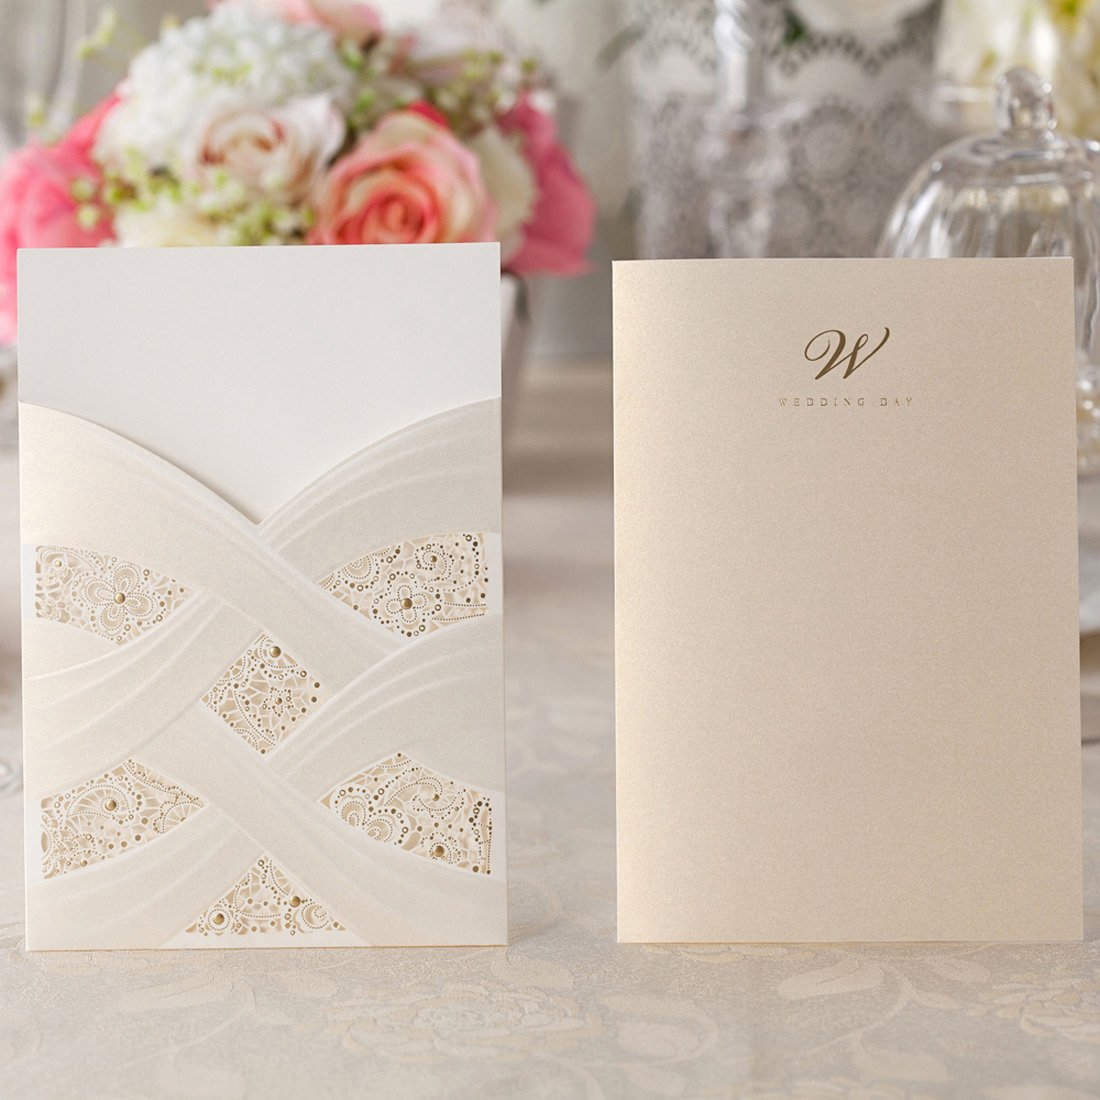 pack of 50pcs Wishmade Ivory Laser Cut Wedding Invitations Cards kits With Lace Sleeve Flower Pocket Design Cardstock 50 Pieces for Bridal Shower